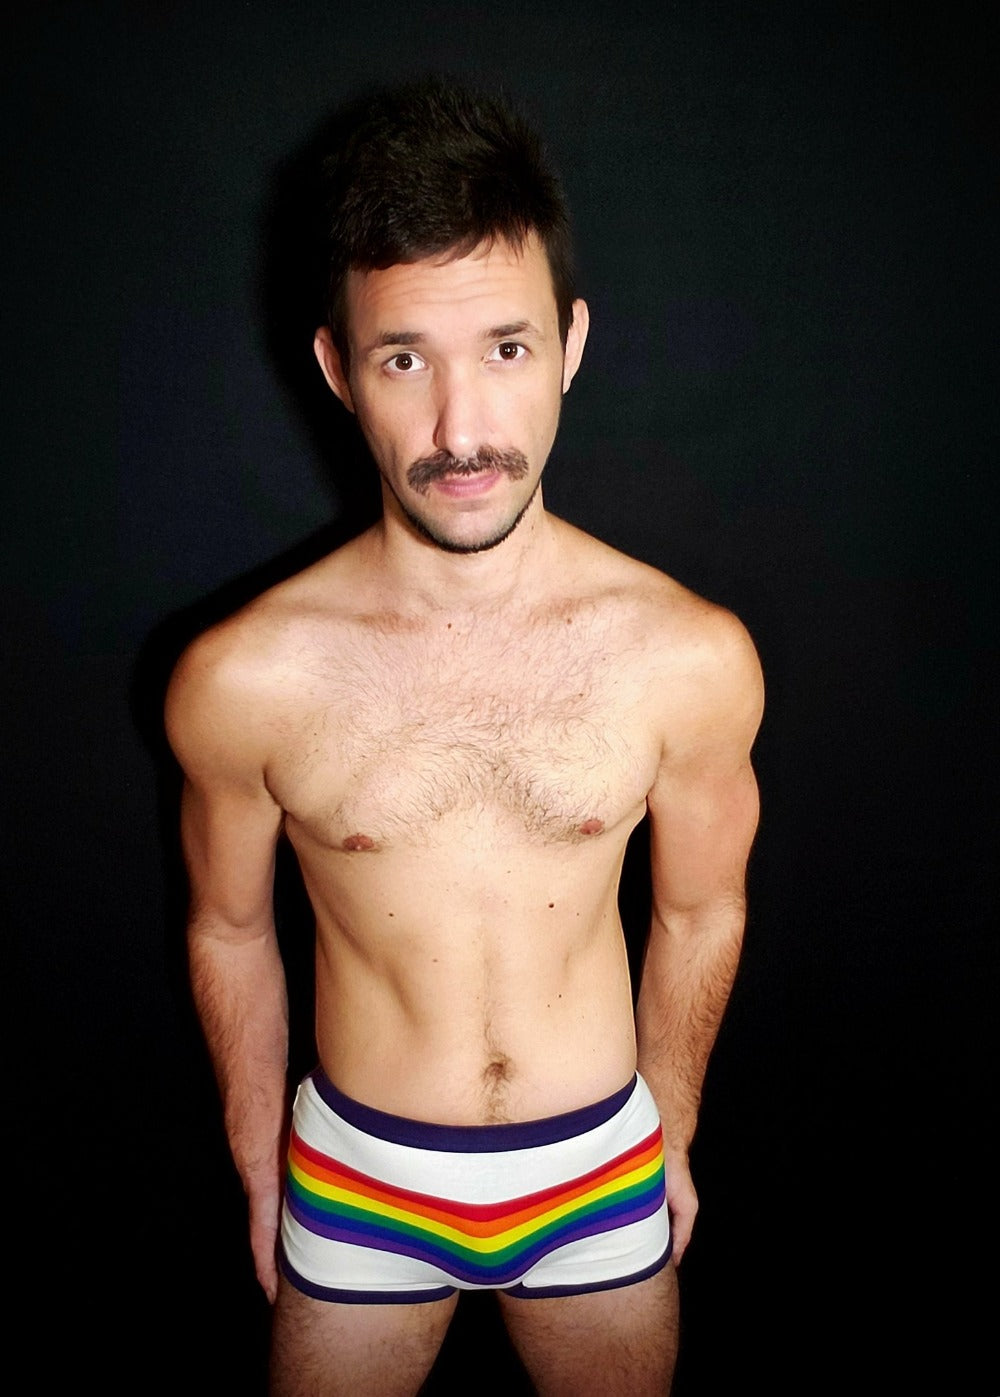 White rainbow undies